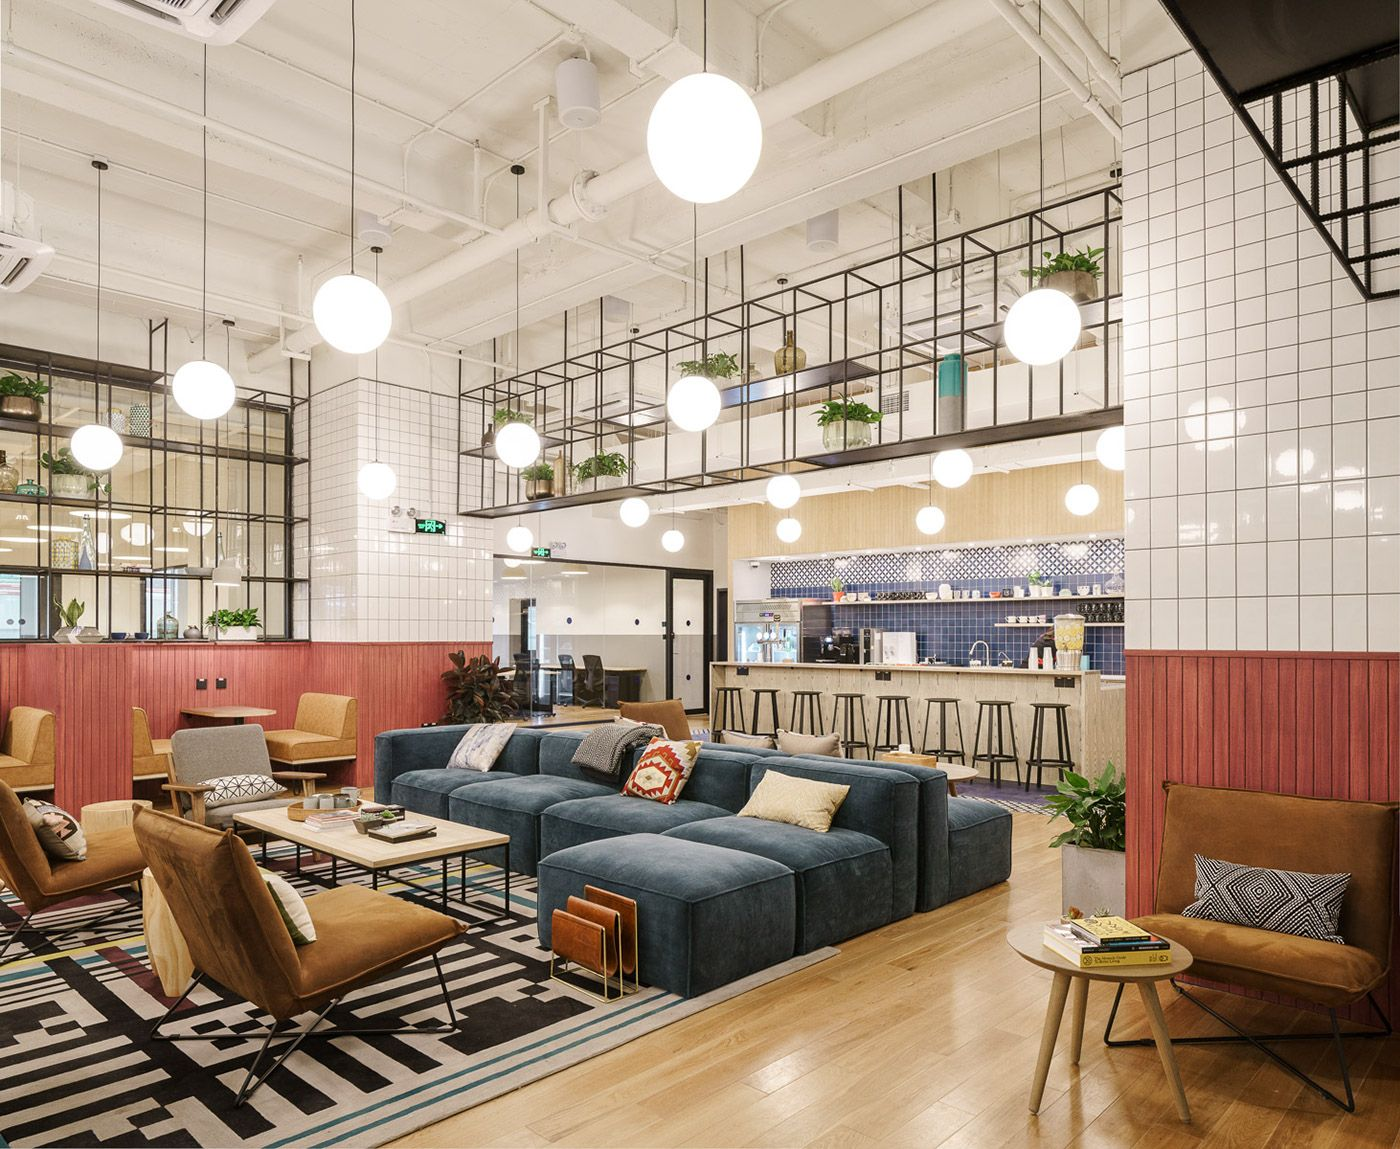 Photo C Seth Powers Architecture Photographer In Shanghai Wework East Yanan Road Brings Modern Office Interior Design Modern Office Space Office Space Design